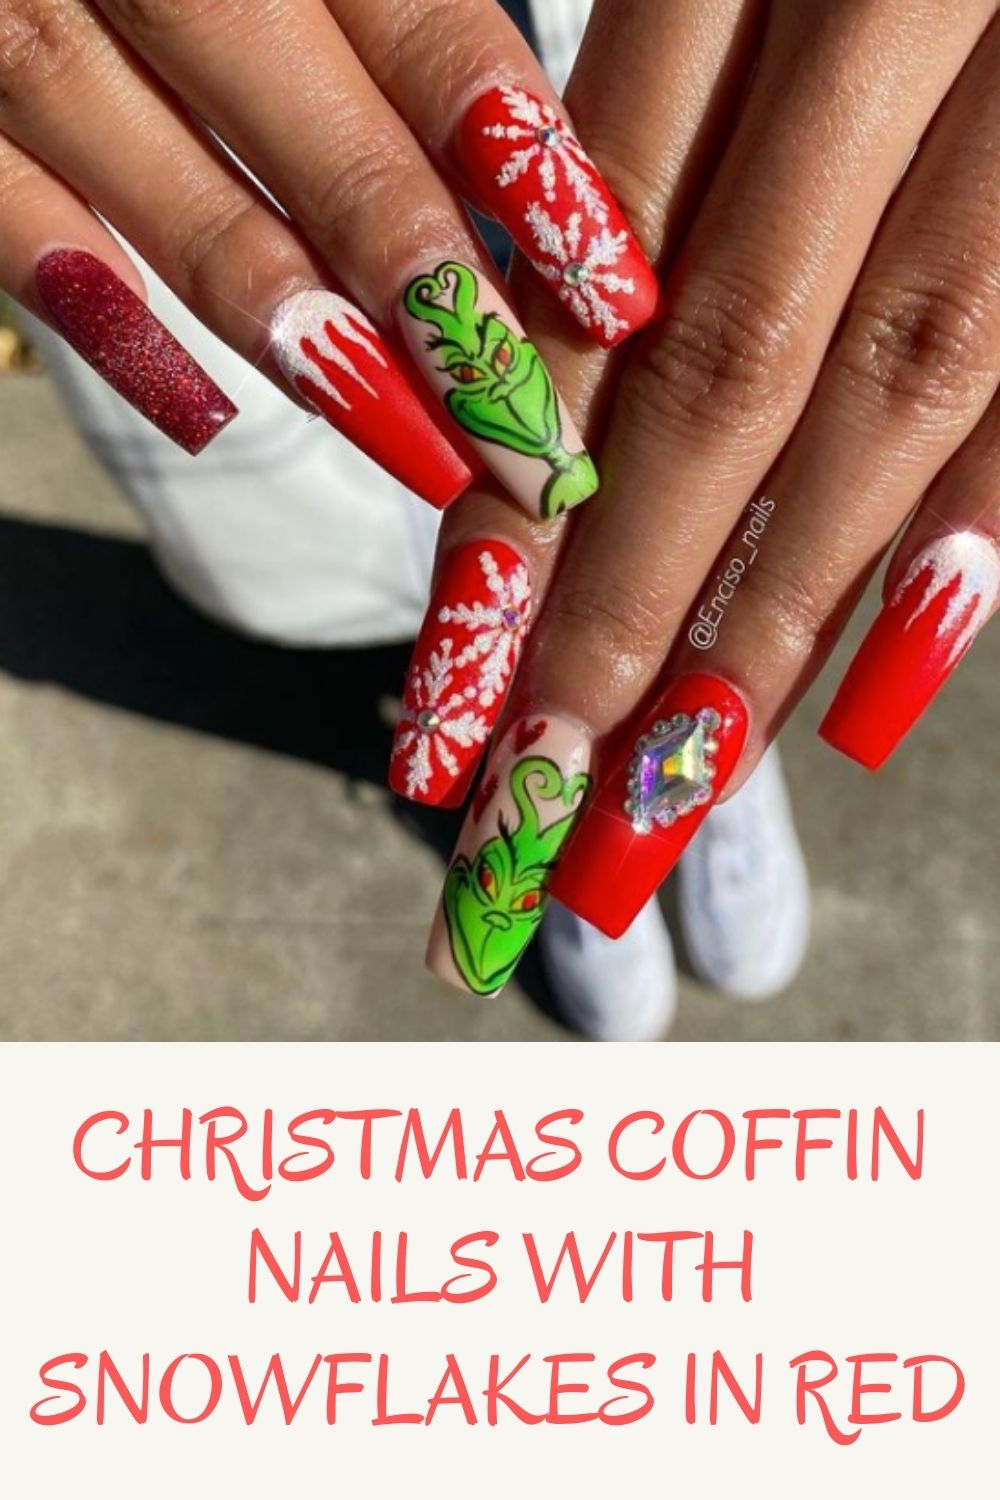 Christmas coffin nails with snowflakes